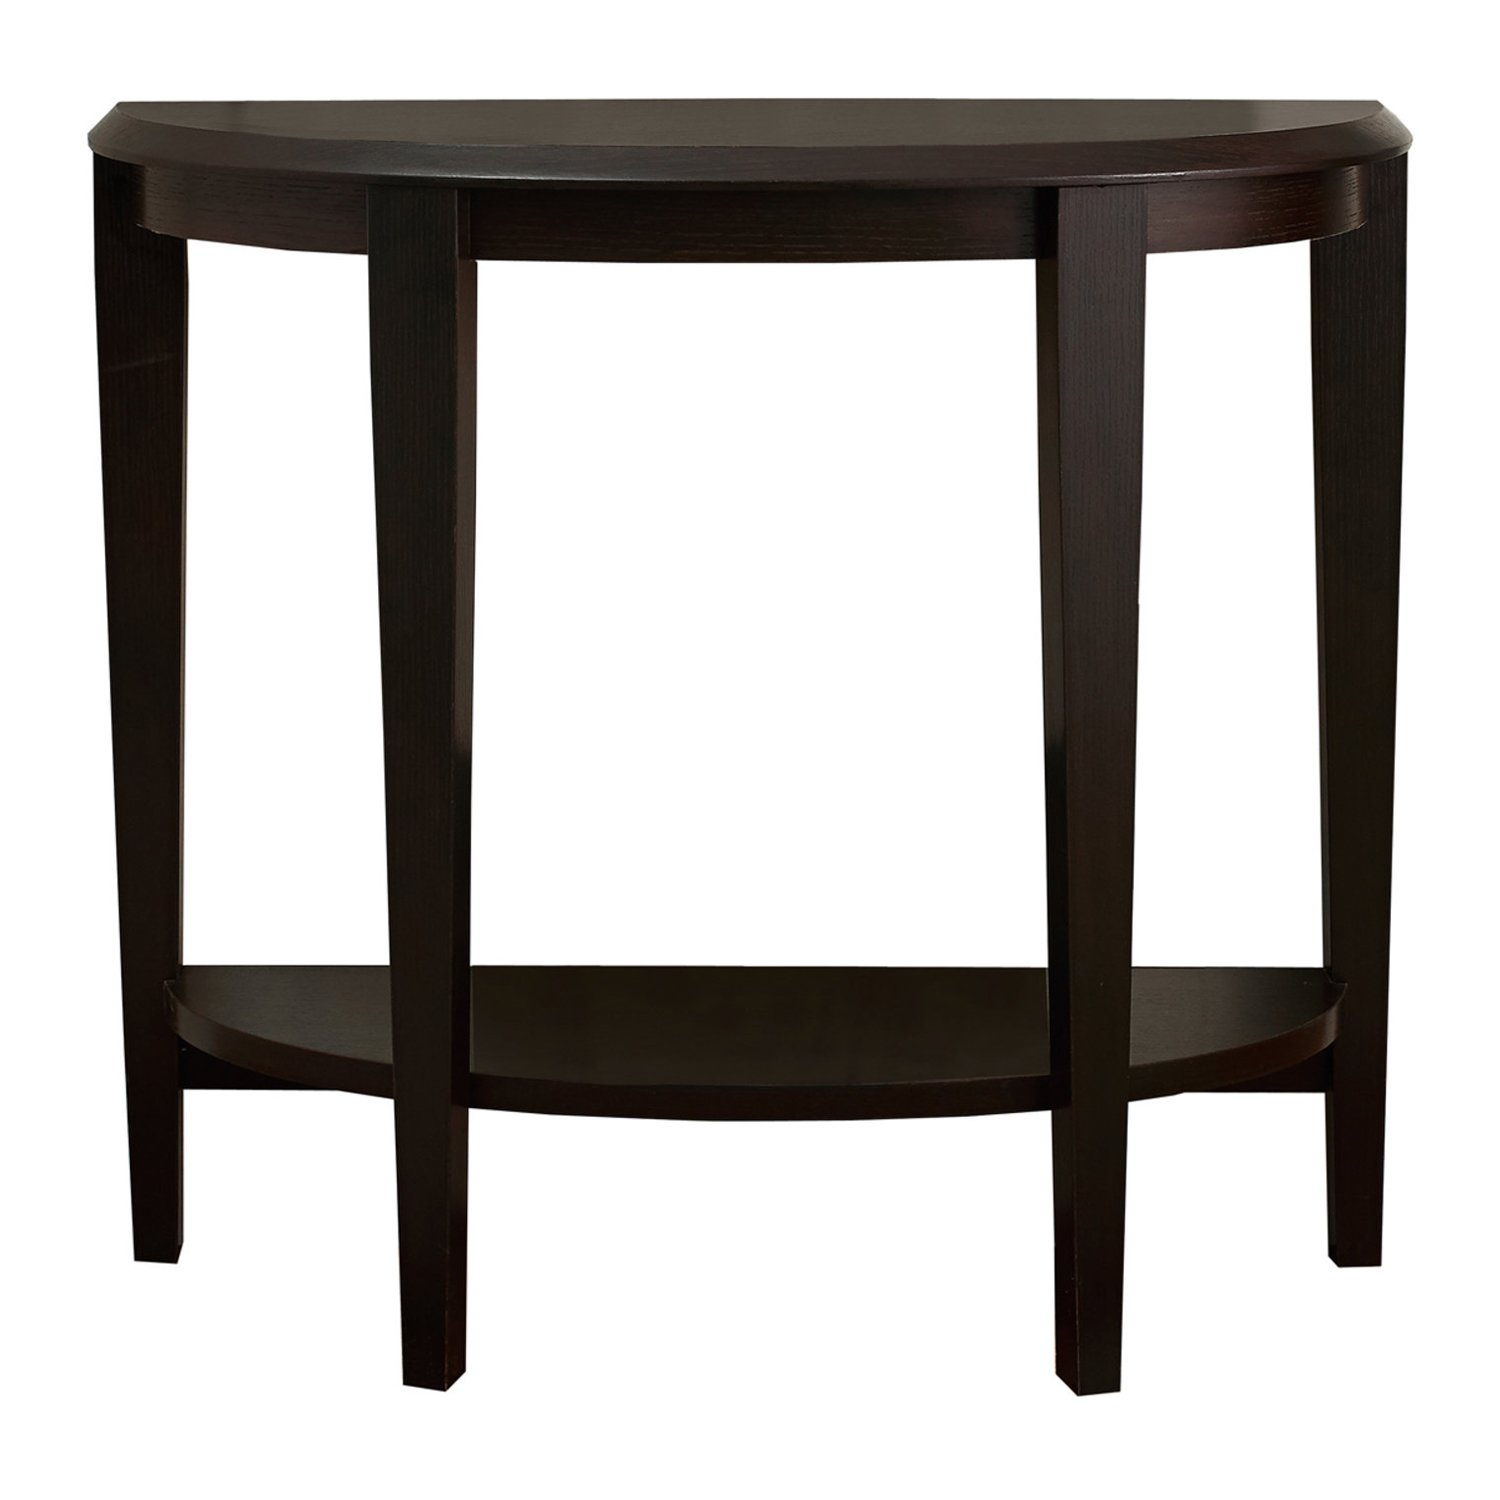 monarch specialties cappuccino hall console accent table dark taupe inch kitchen dining free fall runner quilt patterns west elm room lighting target windham side modern chrome